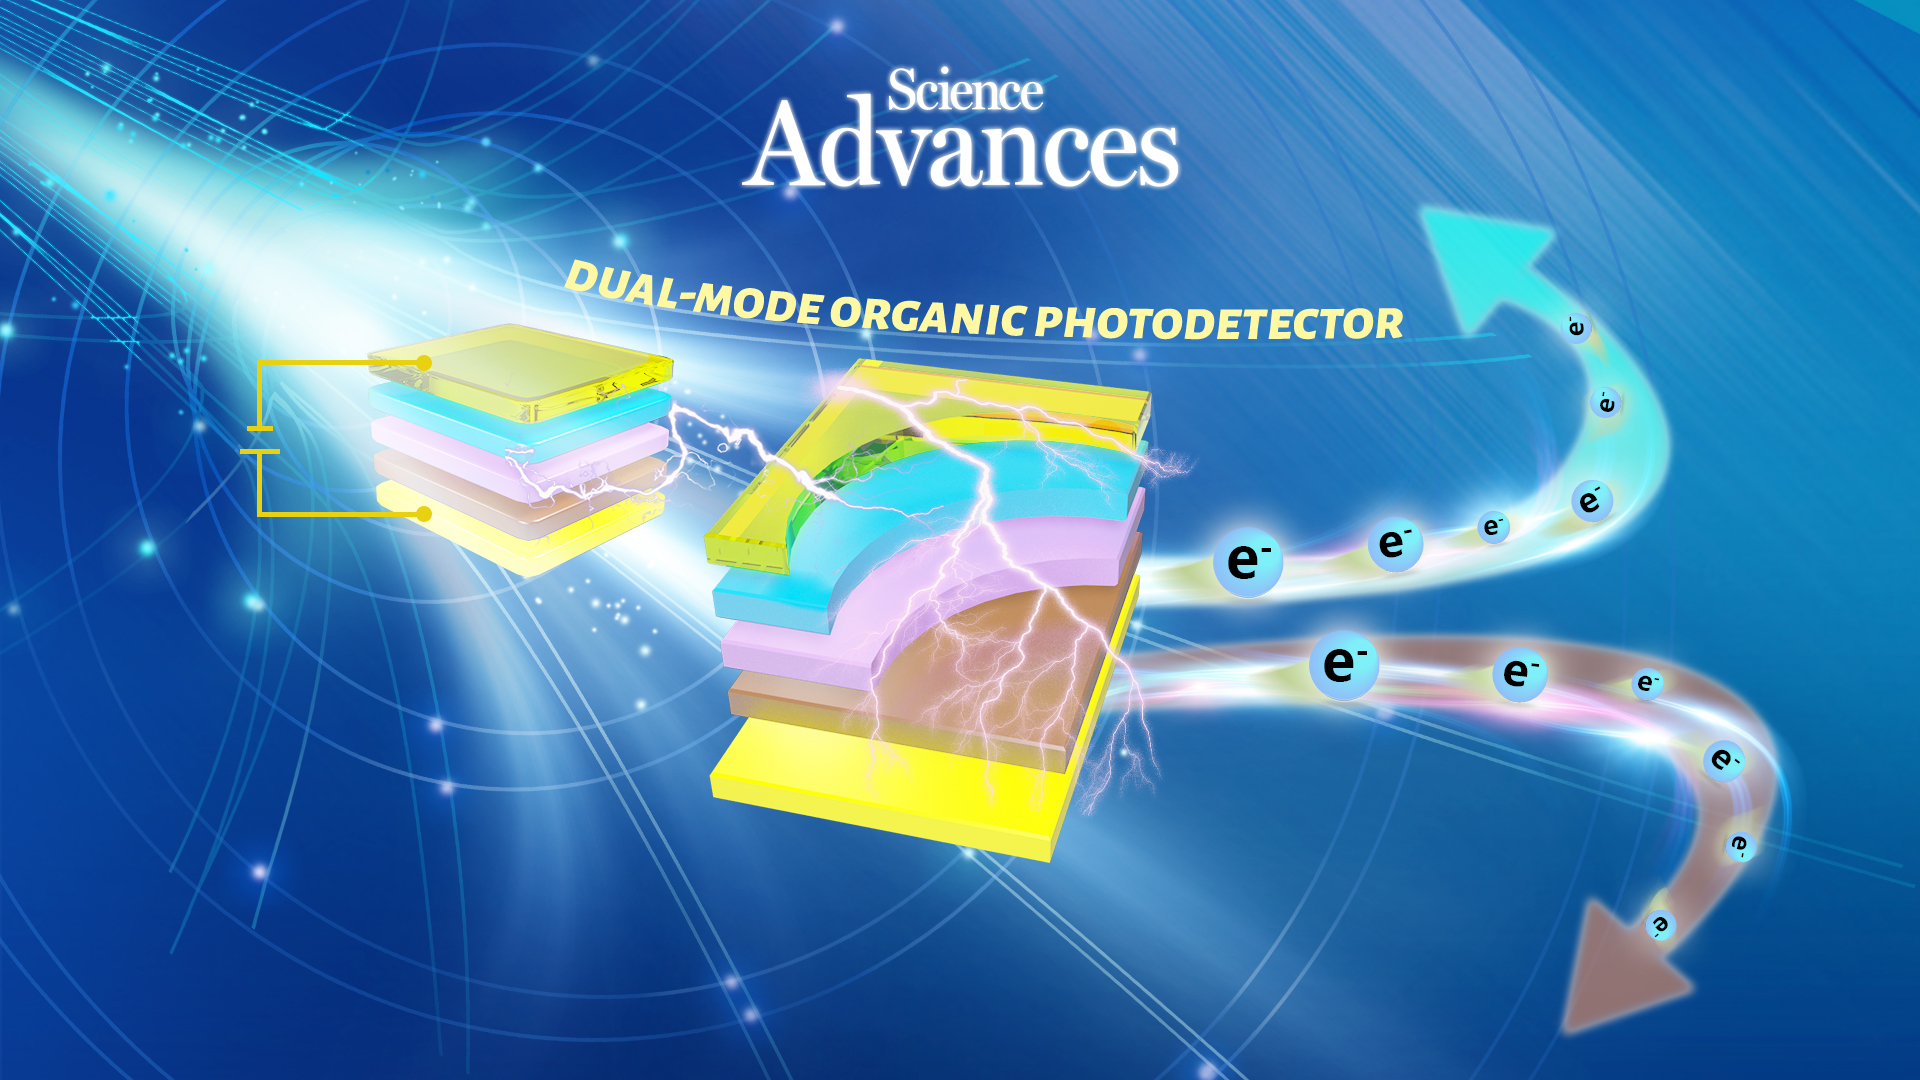 Dual-mode organic photodetectors improved through new technology